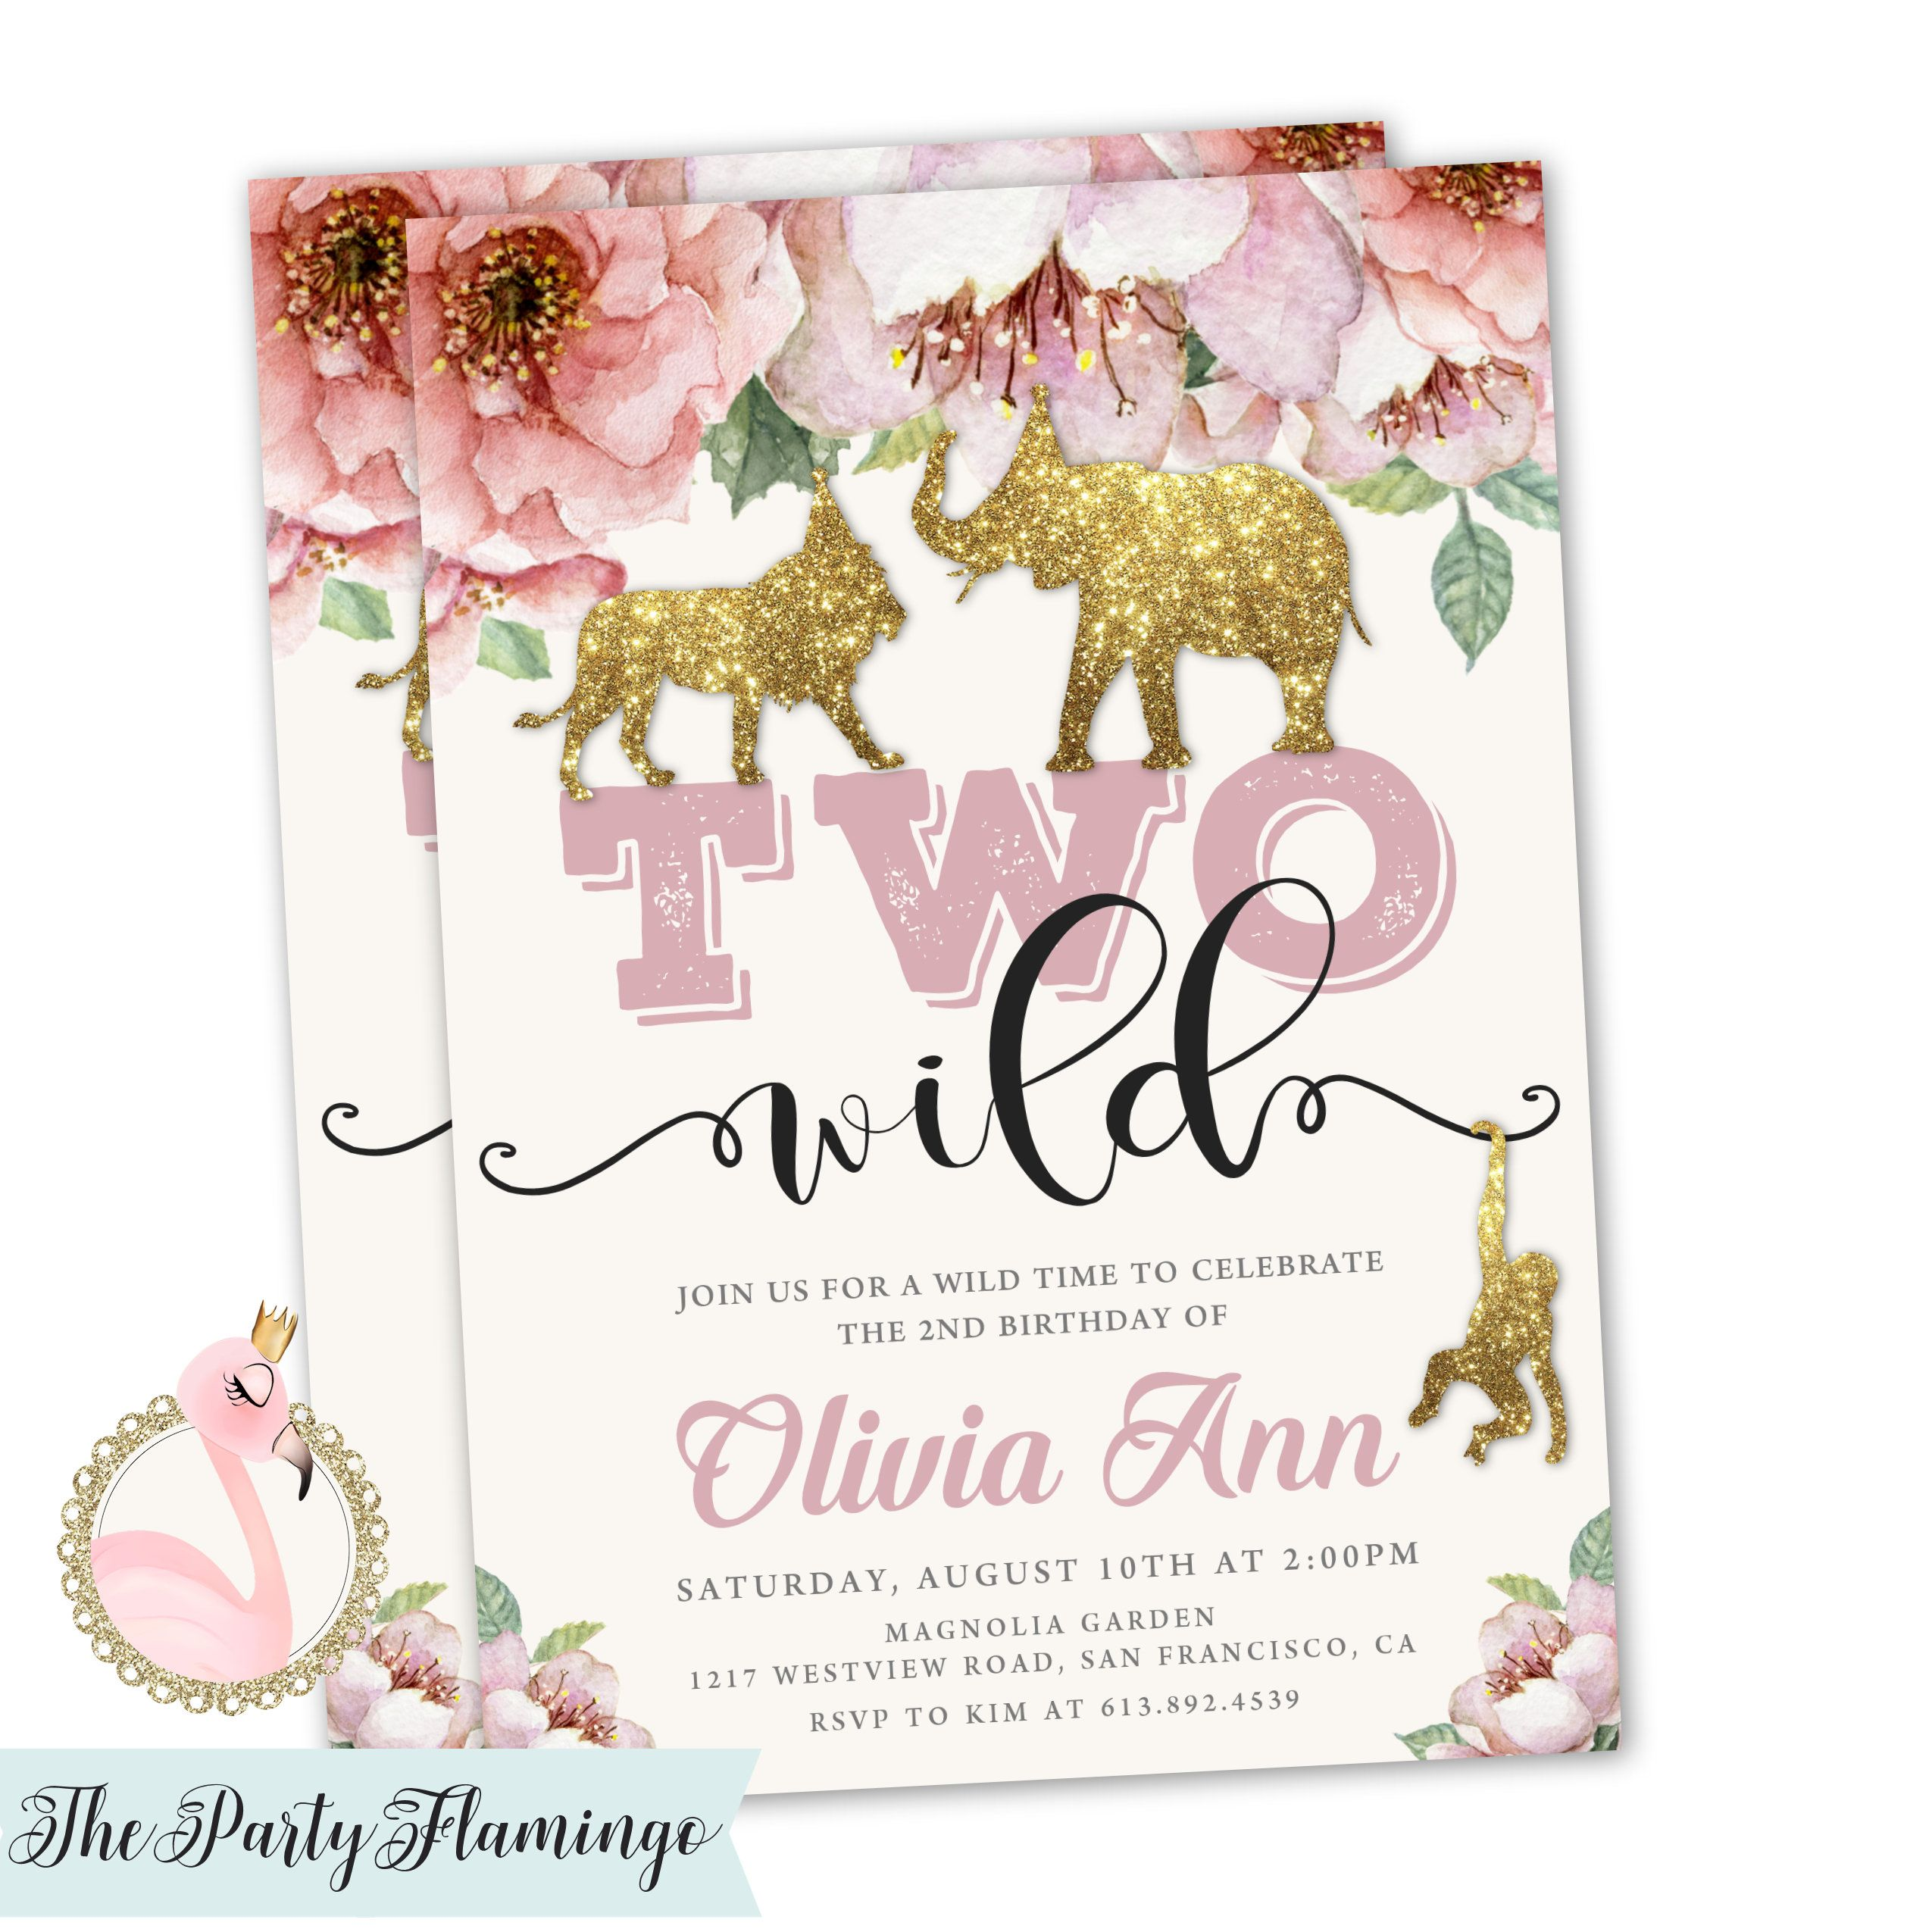 Two Wild Birthday Invitations For A Girl Features Pretty Florals And Gold Glitter Safari Animals Great Themed Parties